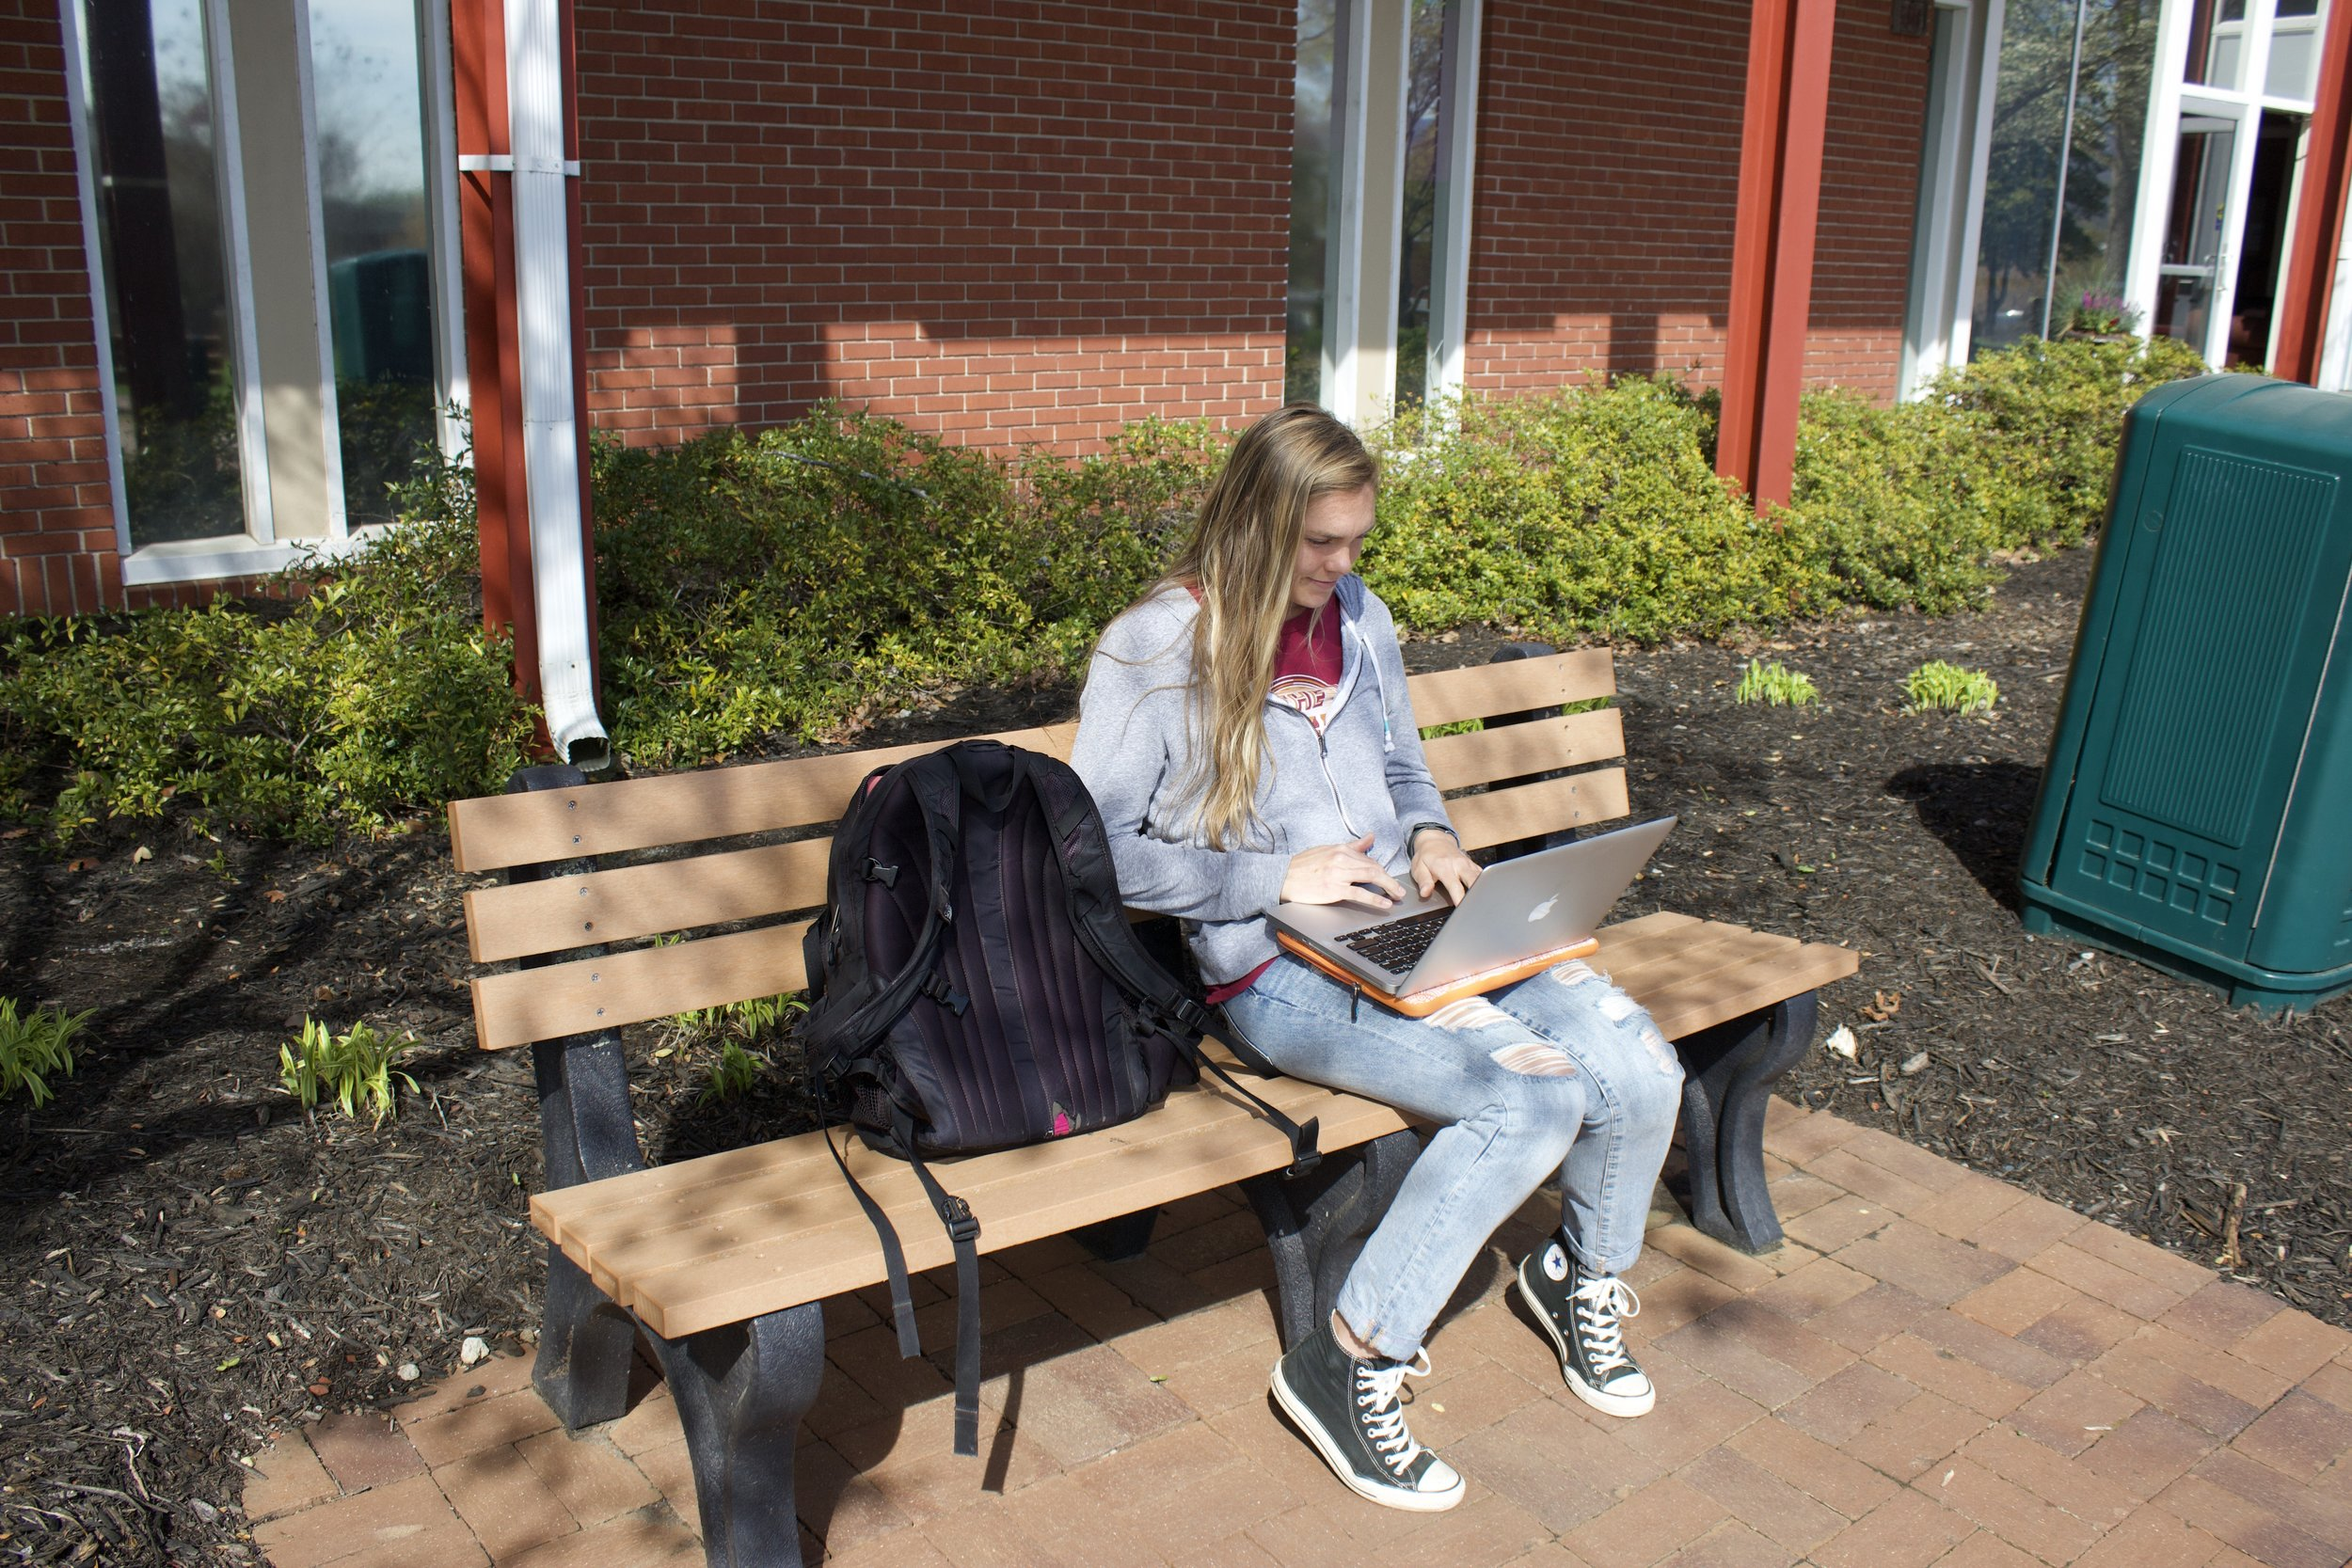 Senior Leah Austin takes advantage of the good weather while studying for exams.